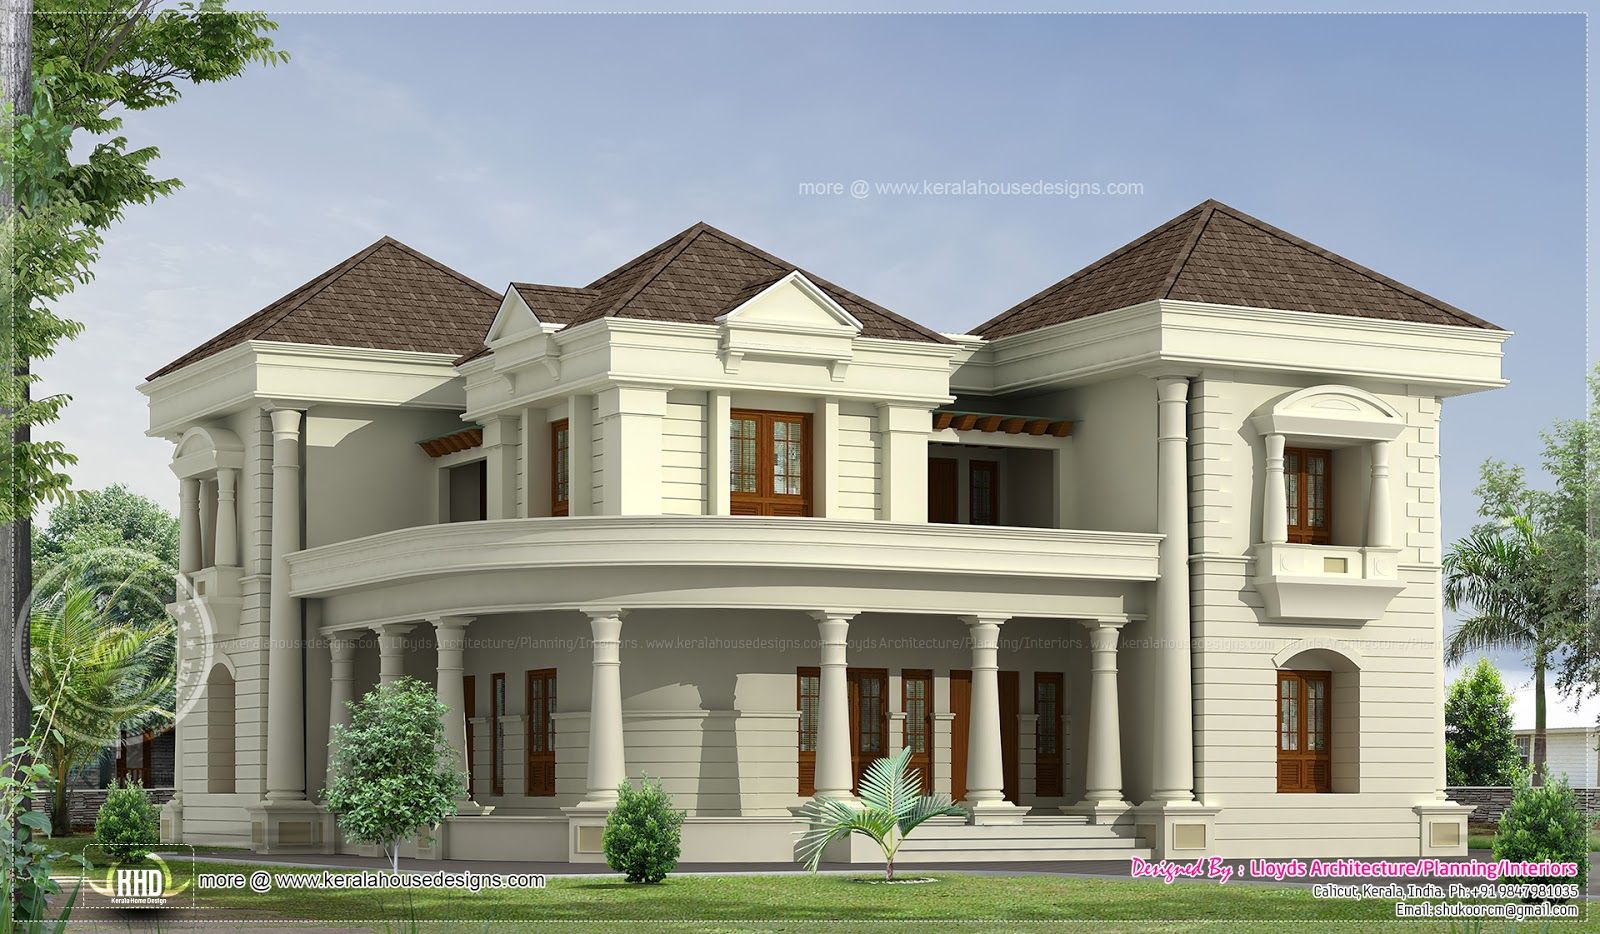 Modern bungalows bedroom luxurious bungalow floor plan Bungalow interior design photos